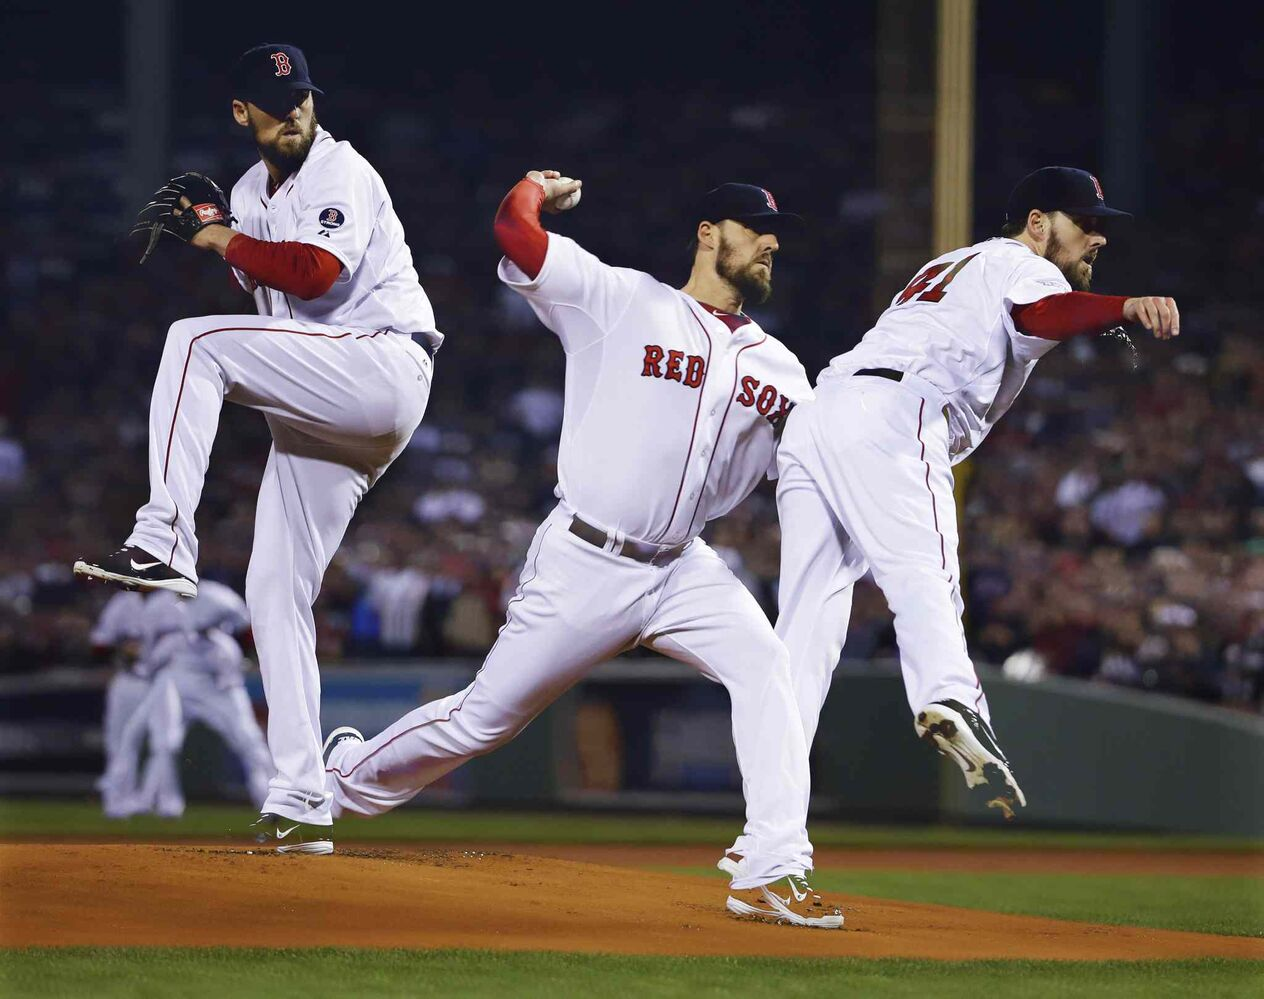 In a multiple exposure, Boston Red Sox starting pitcher John Lackey throws during the first inning. (Matt Slocum / The Associated Press)